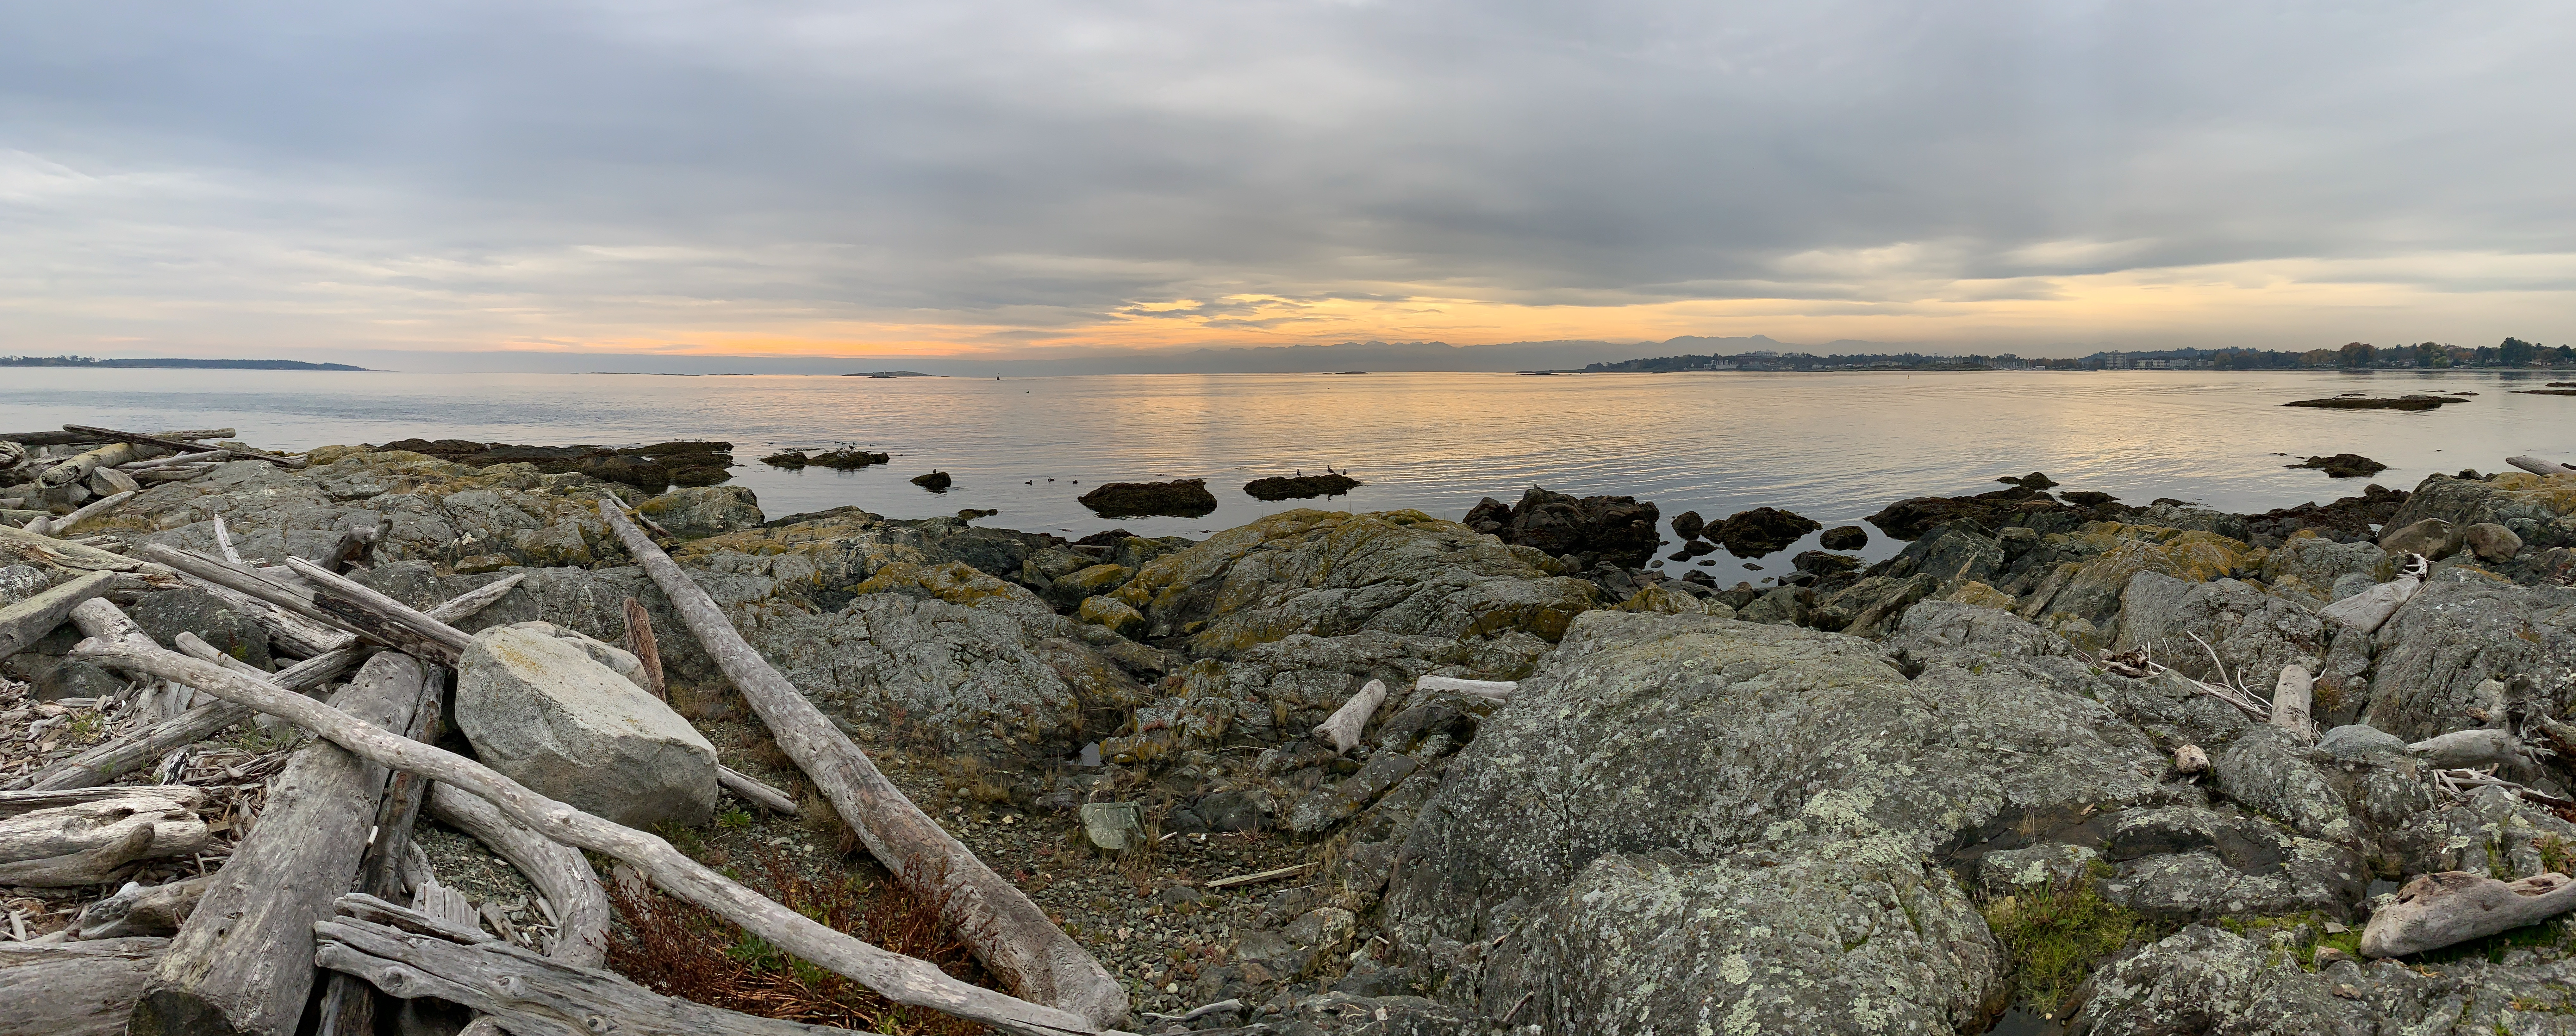 https://rasc.ca/sites/default/files/morning-colours-reflected-off-the-salish-sea_50954319312_o.jpg